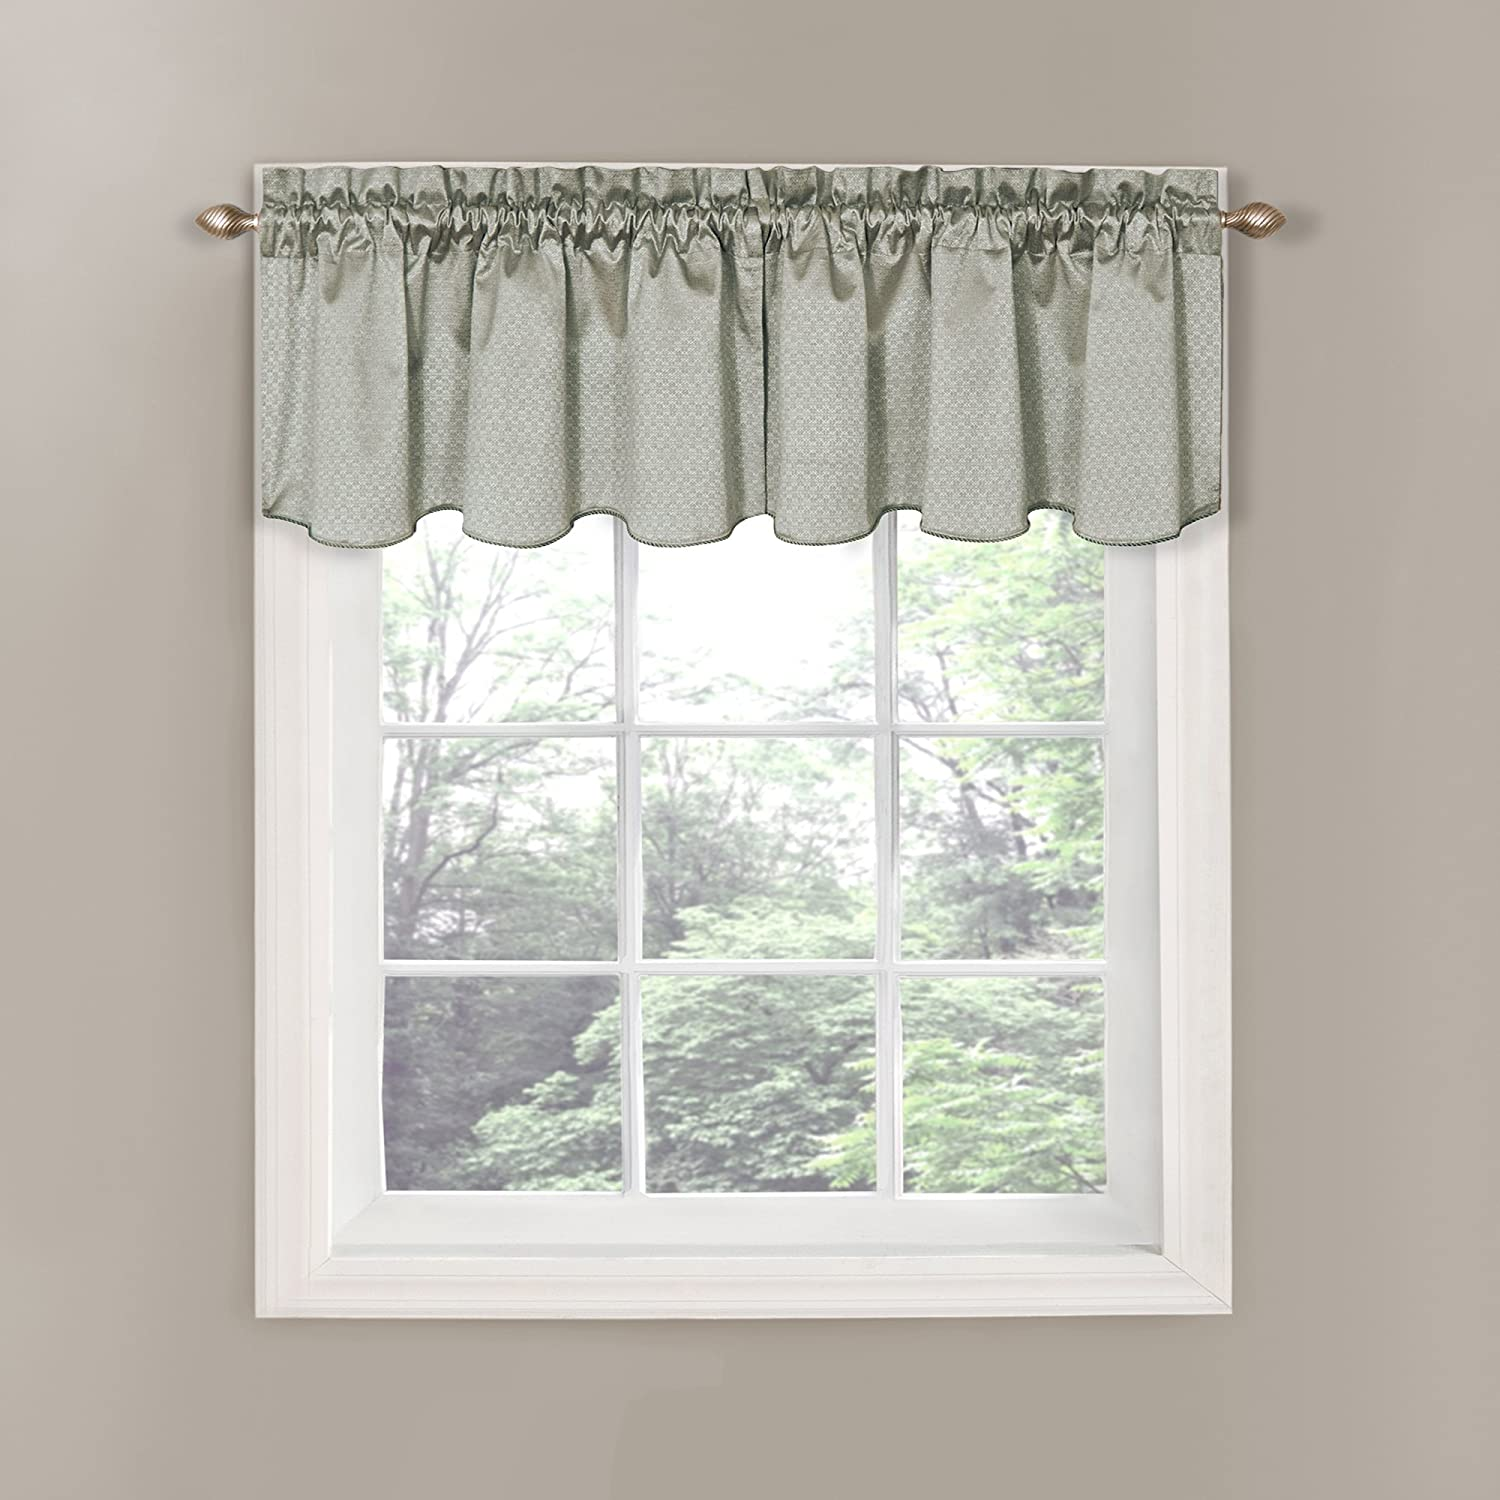 Eclipse Canova Blackout Window Valance 42 By 21 Inch Gray